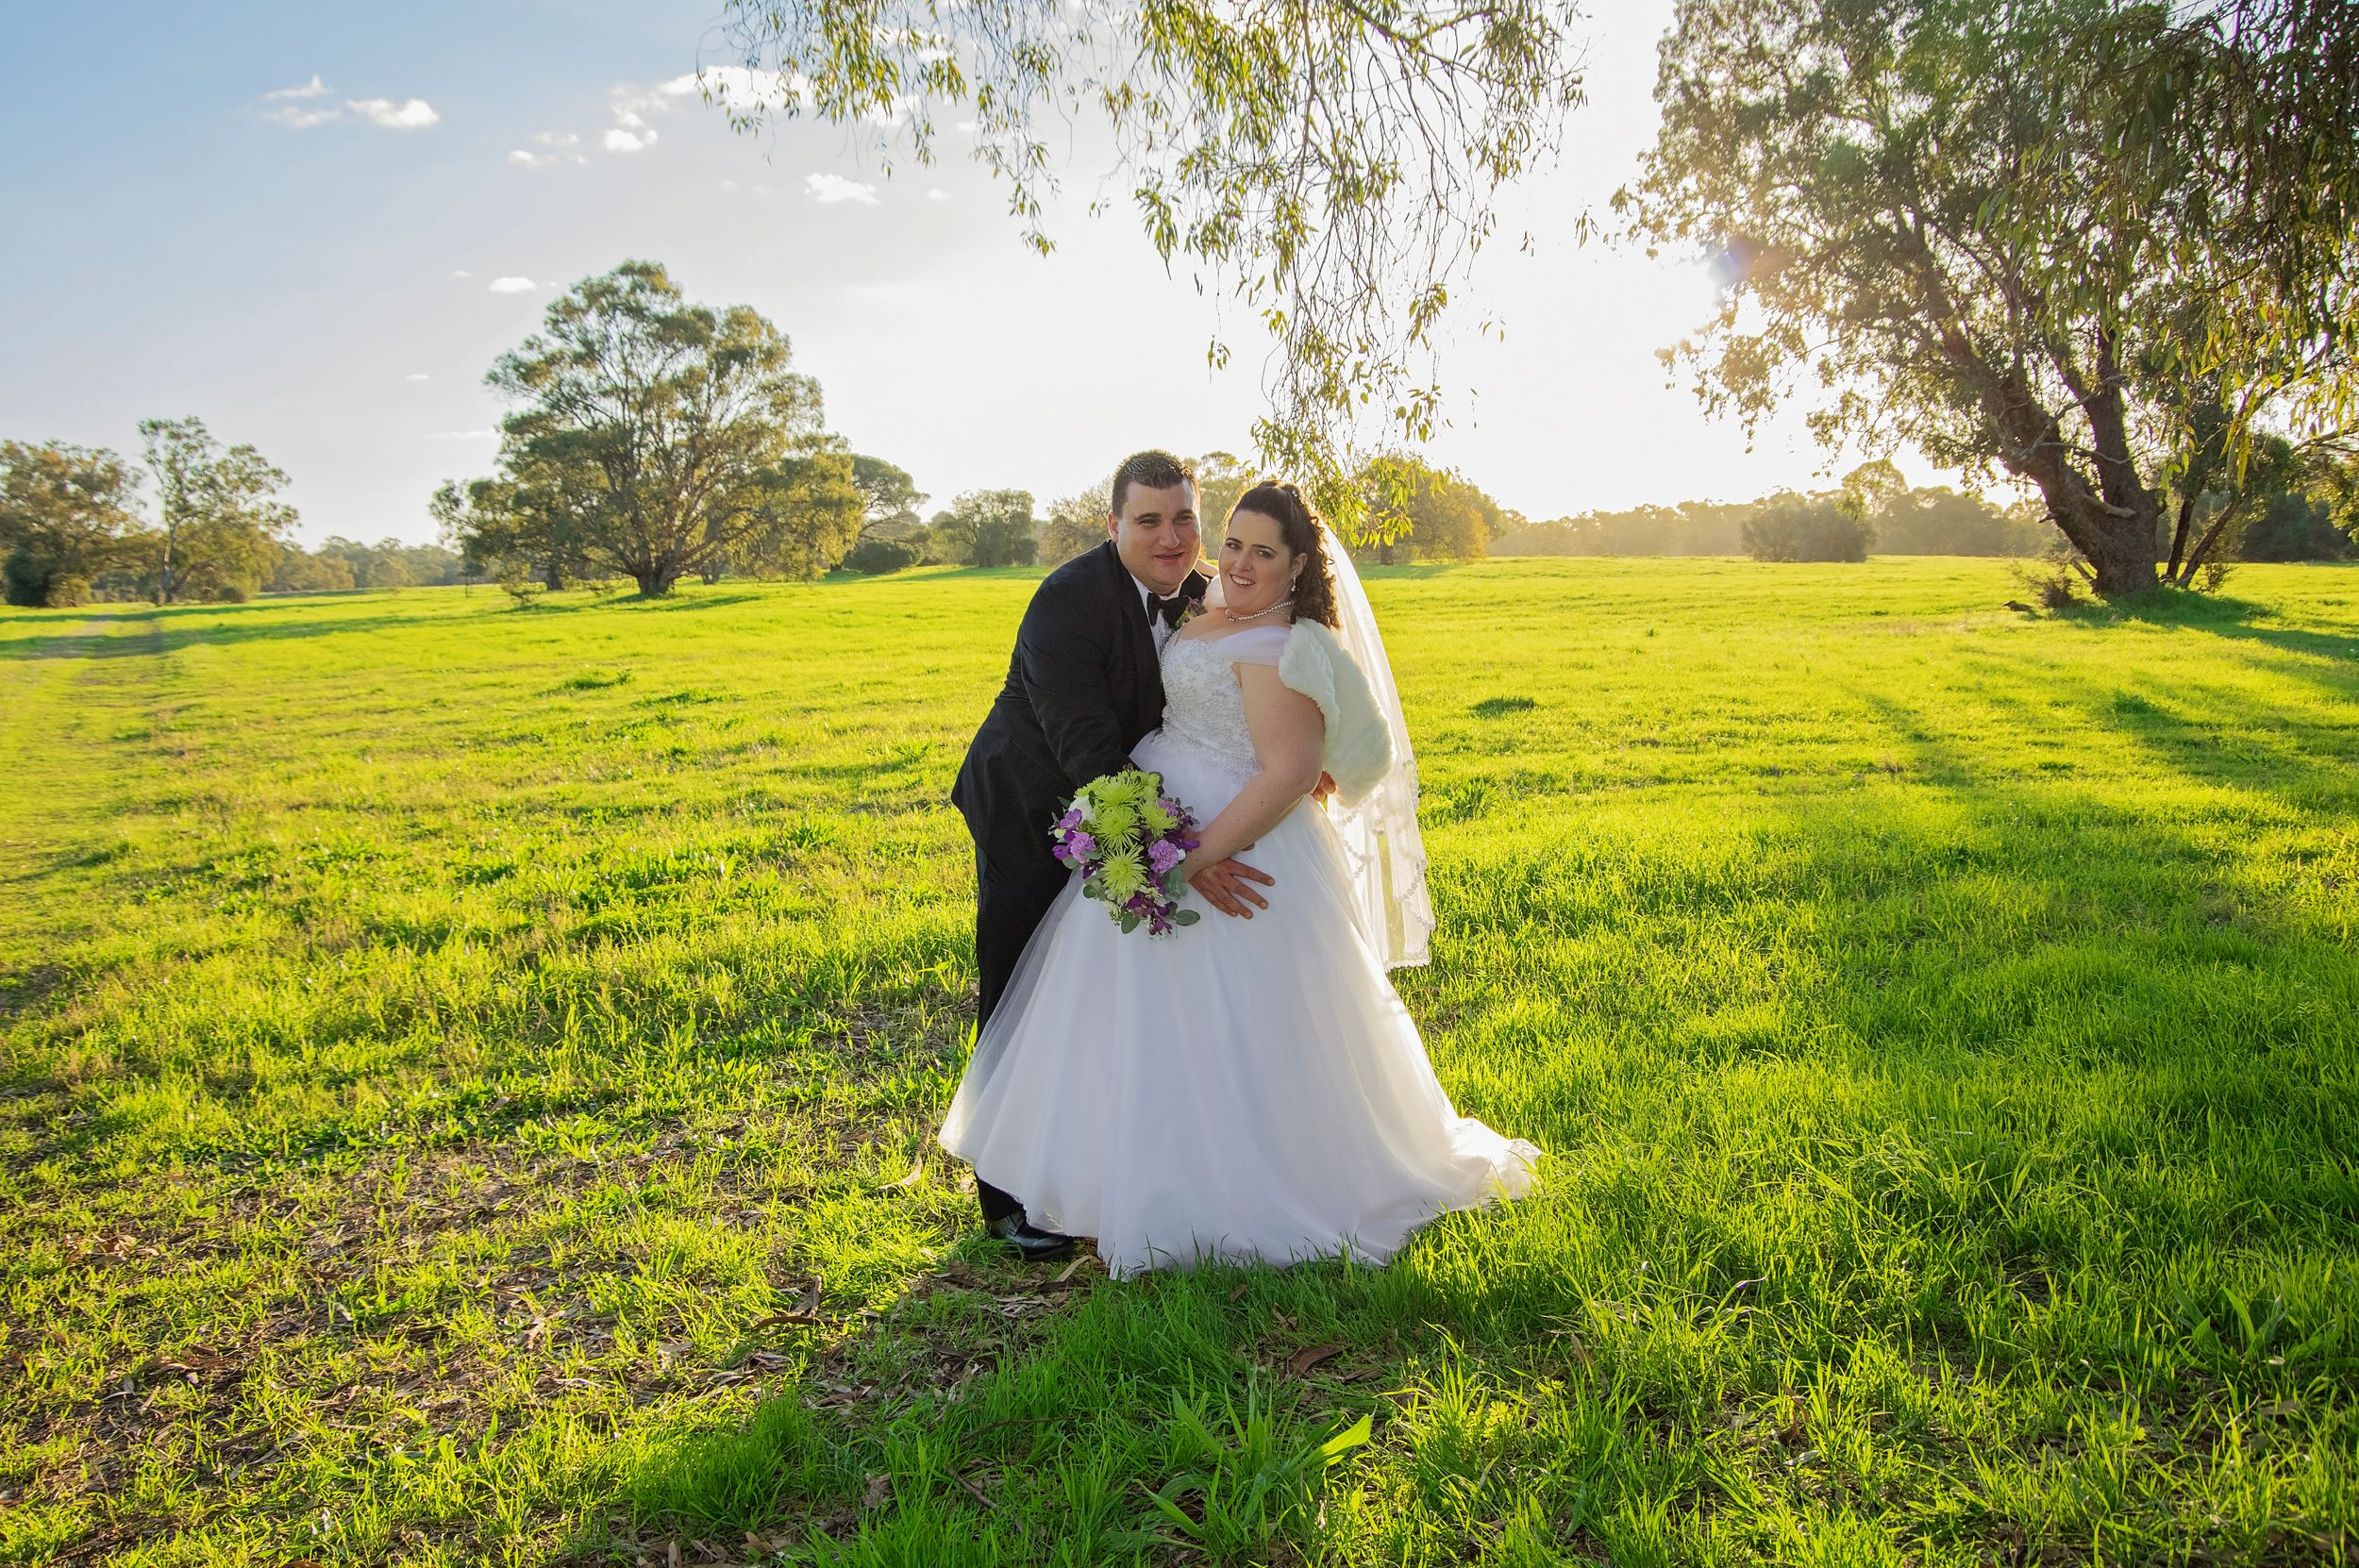 bride and groom posed in grass field